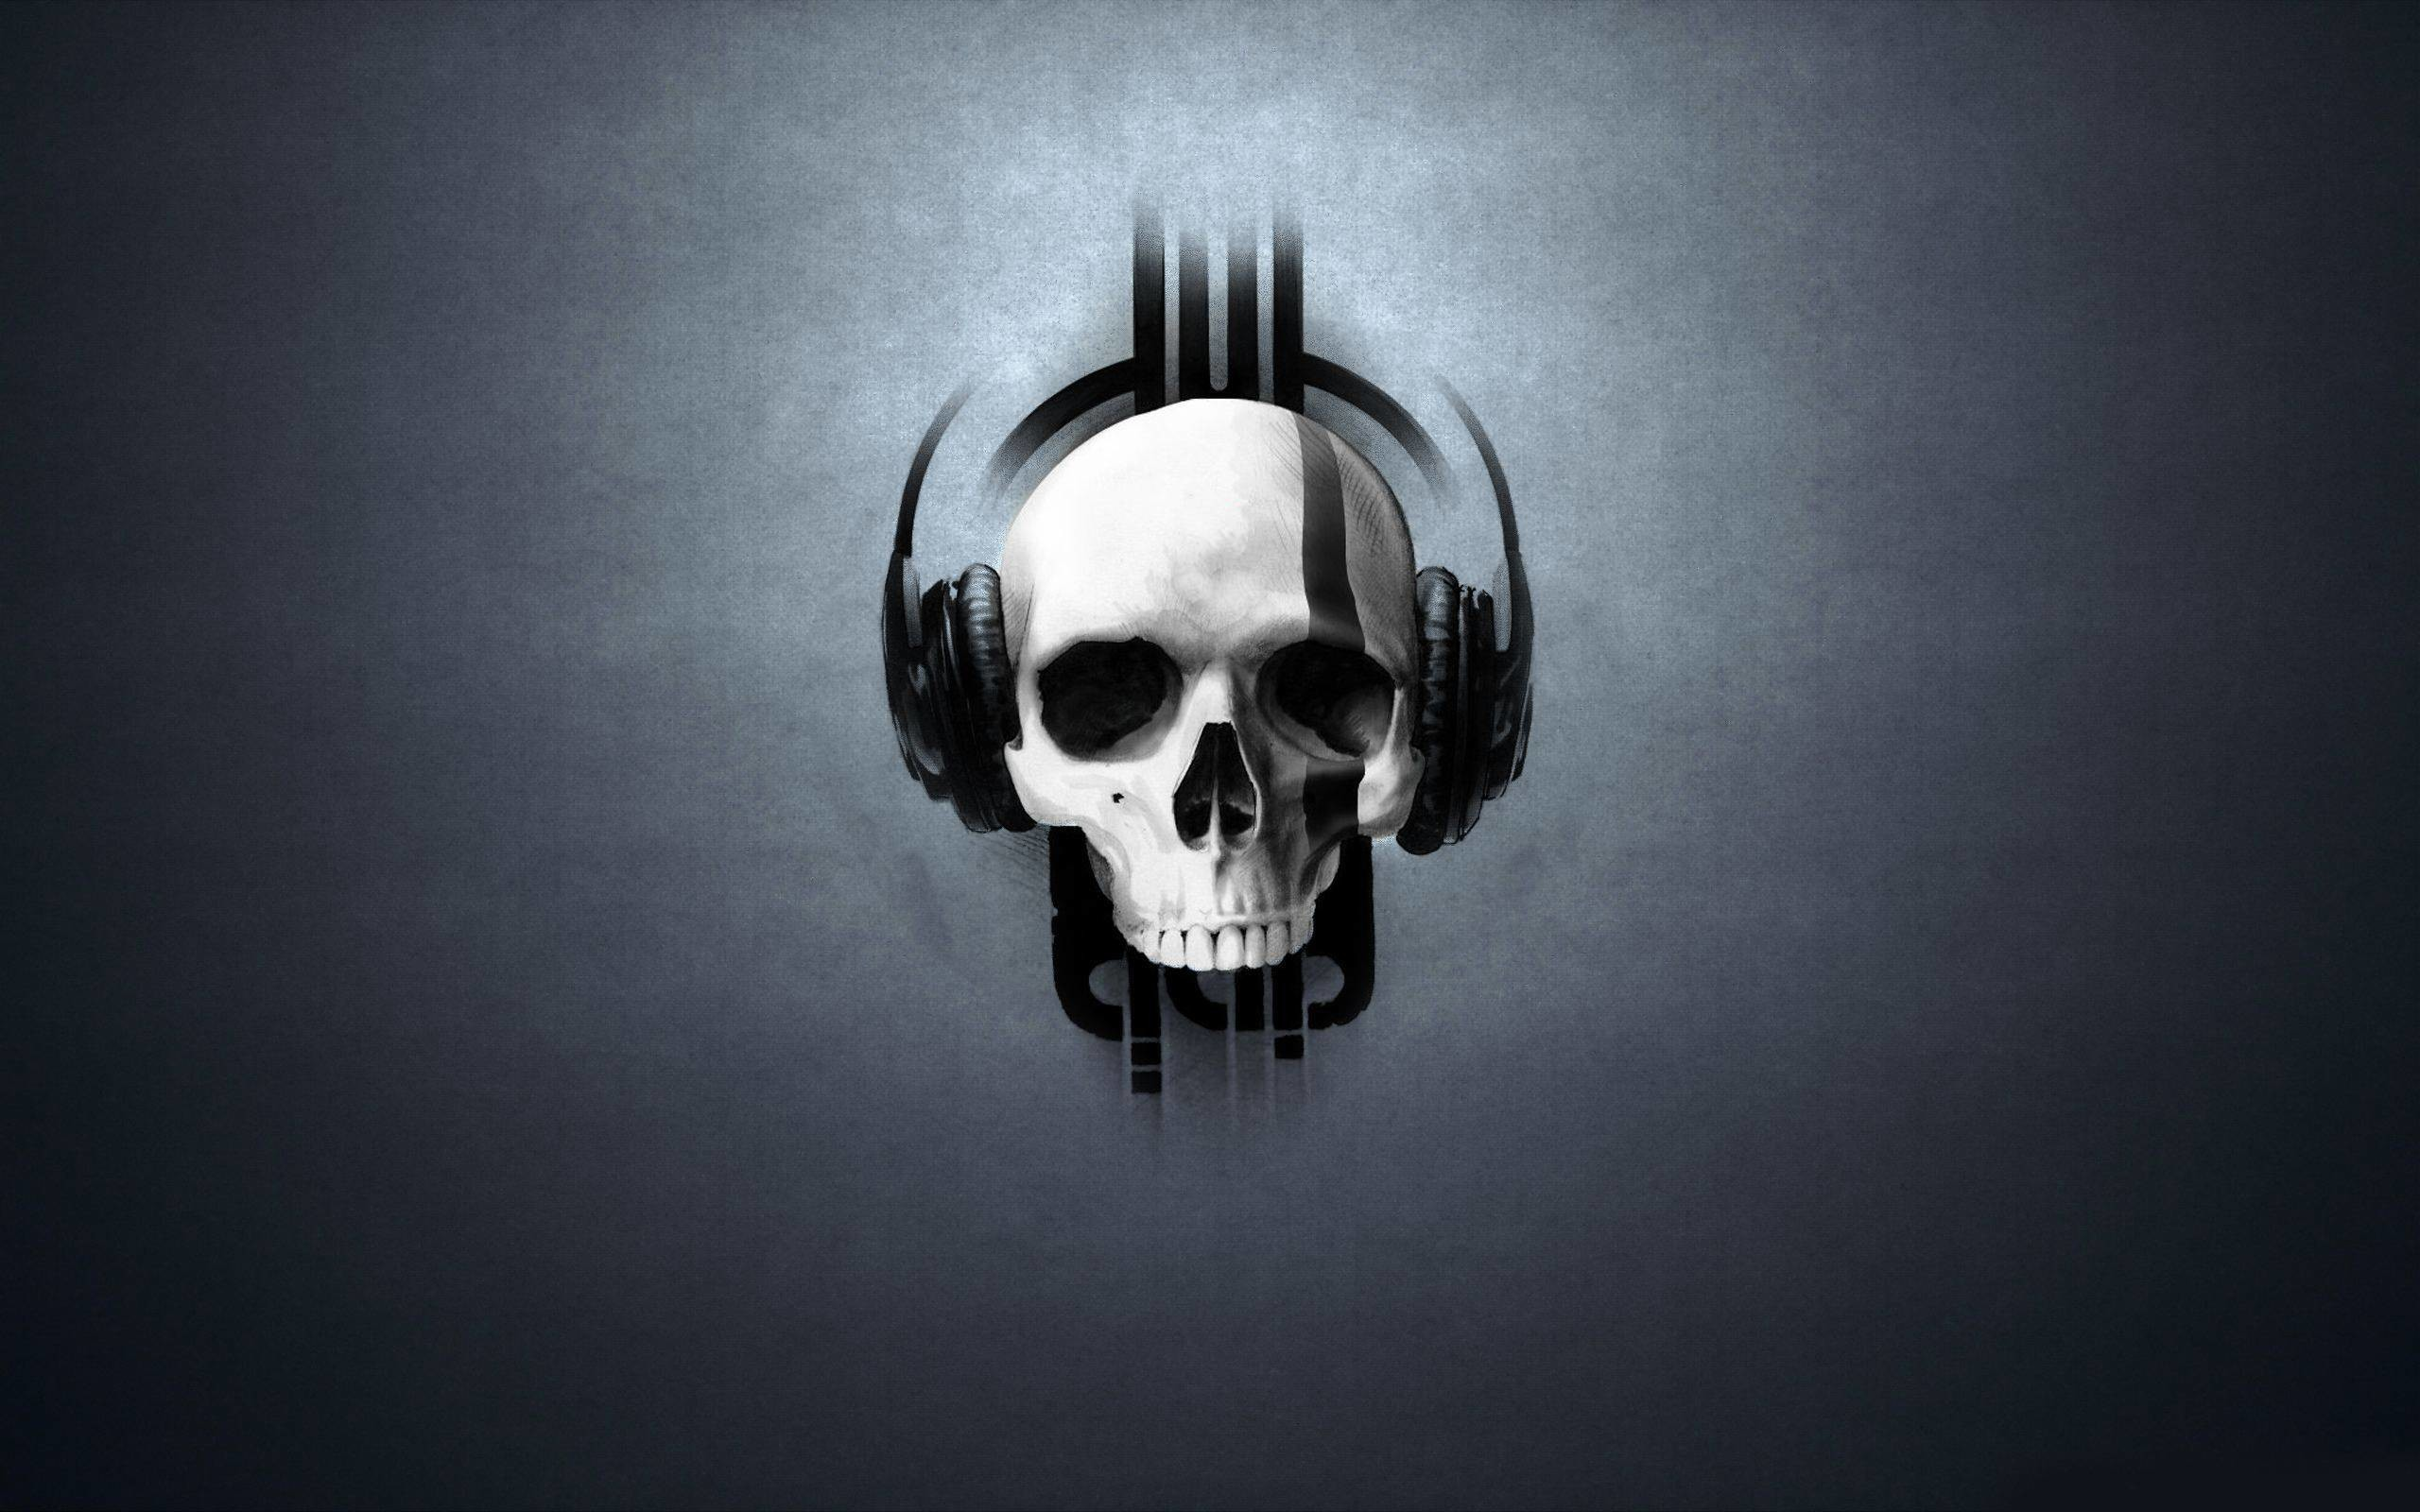 Cool Skull Wallpaper Hd 49 Images